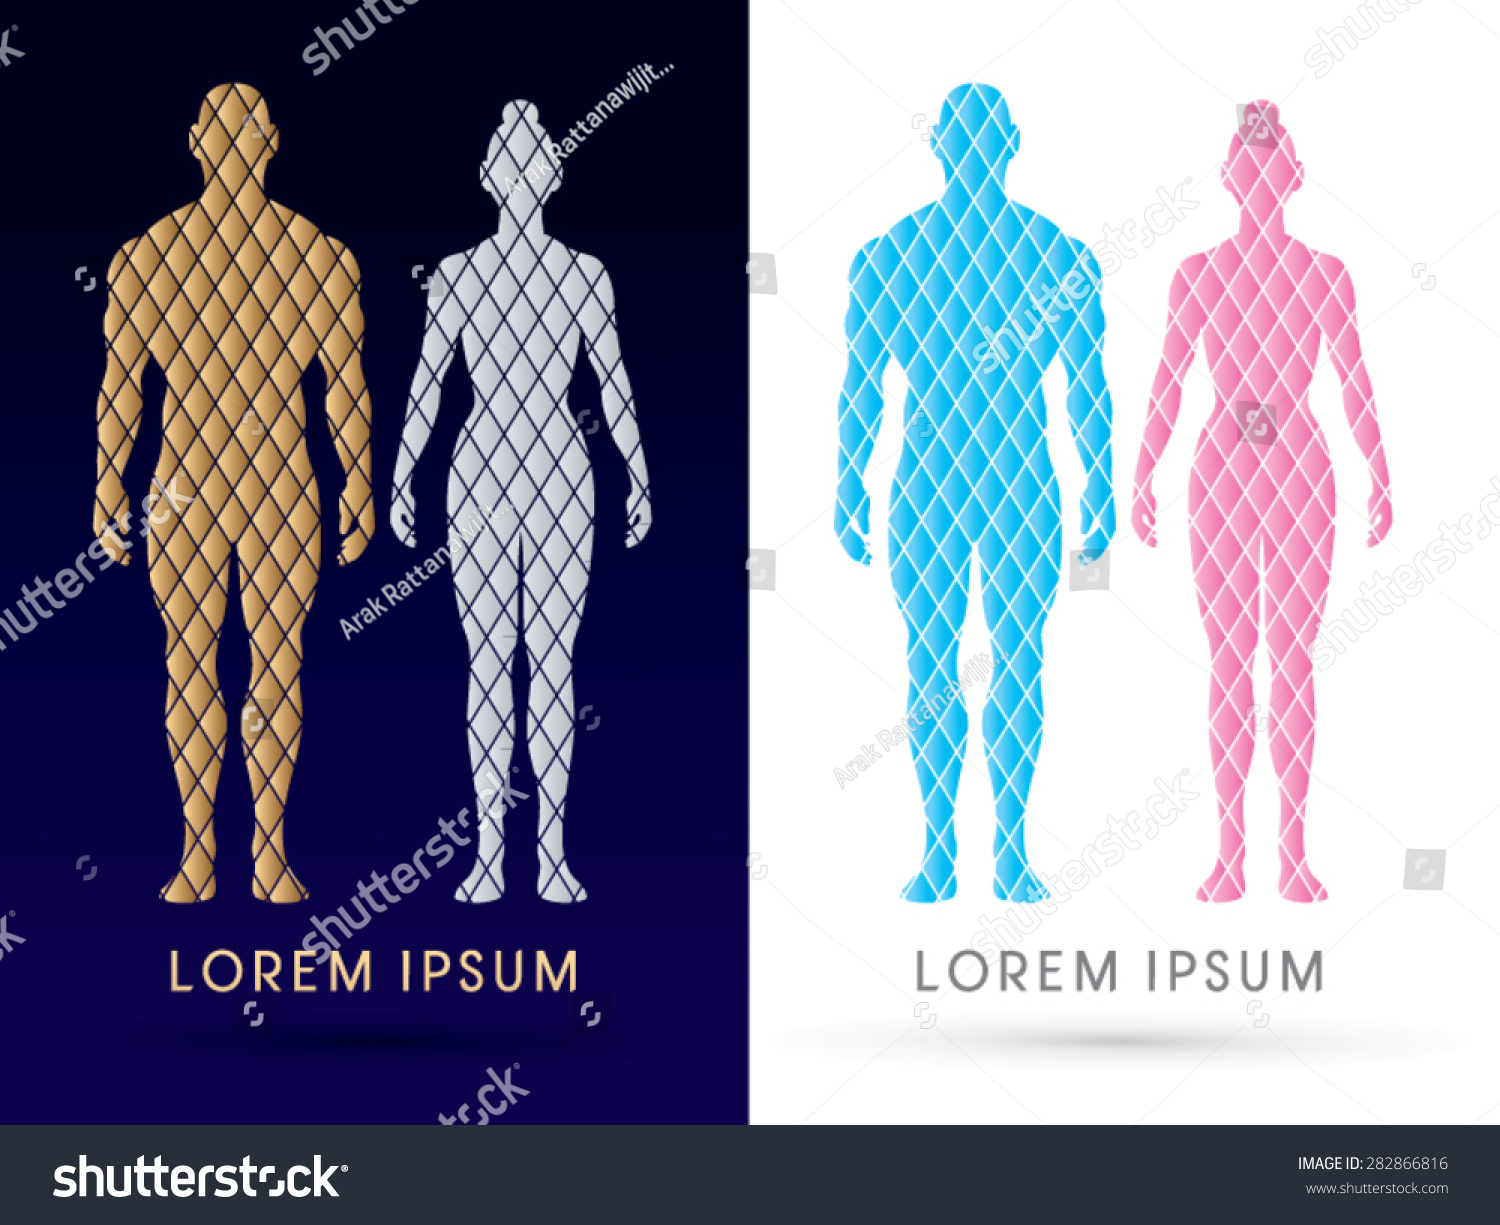 Male Female Anatomy Human Body Full Stock Vector (Royalty Free ...